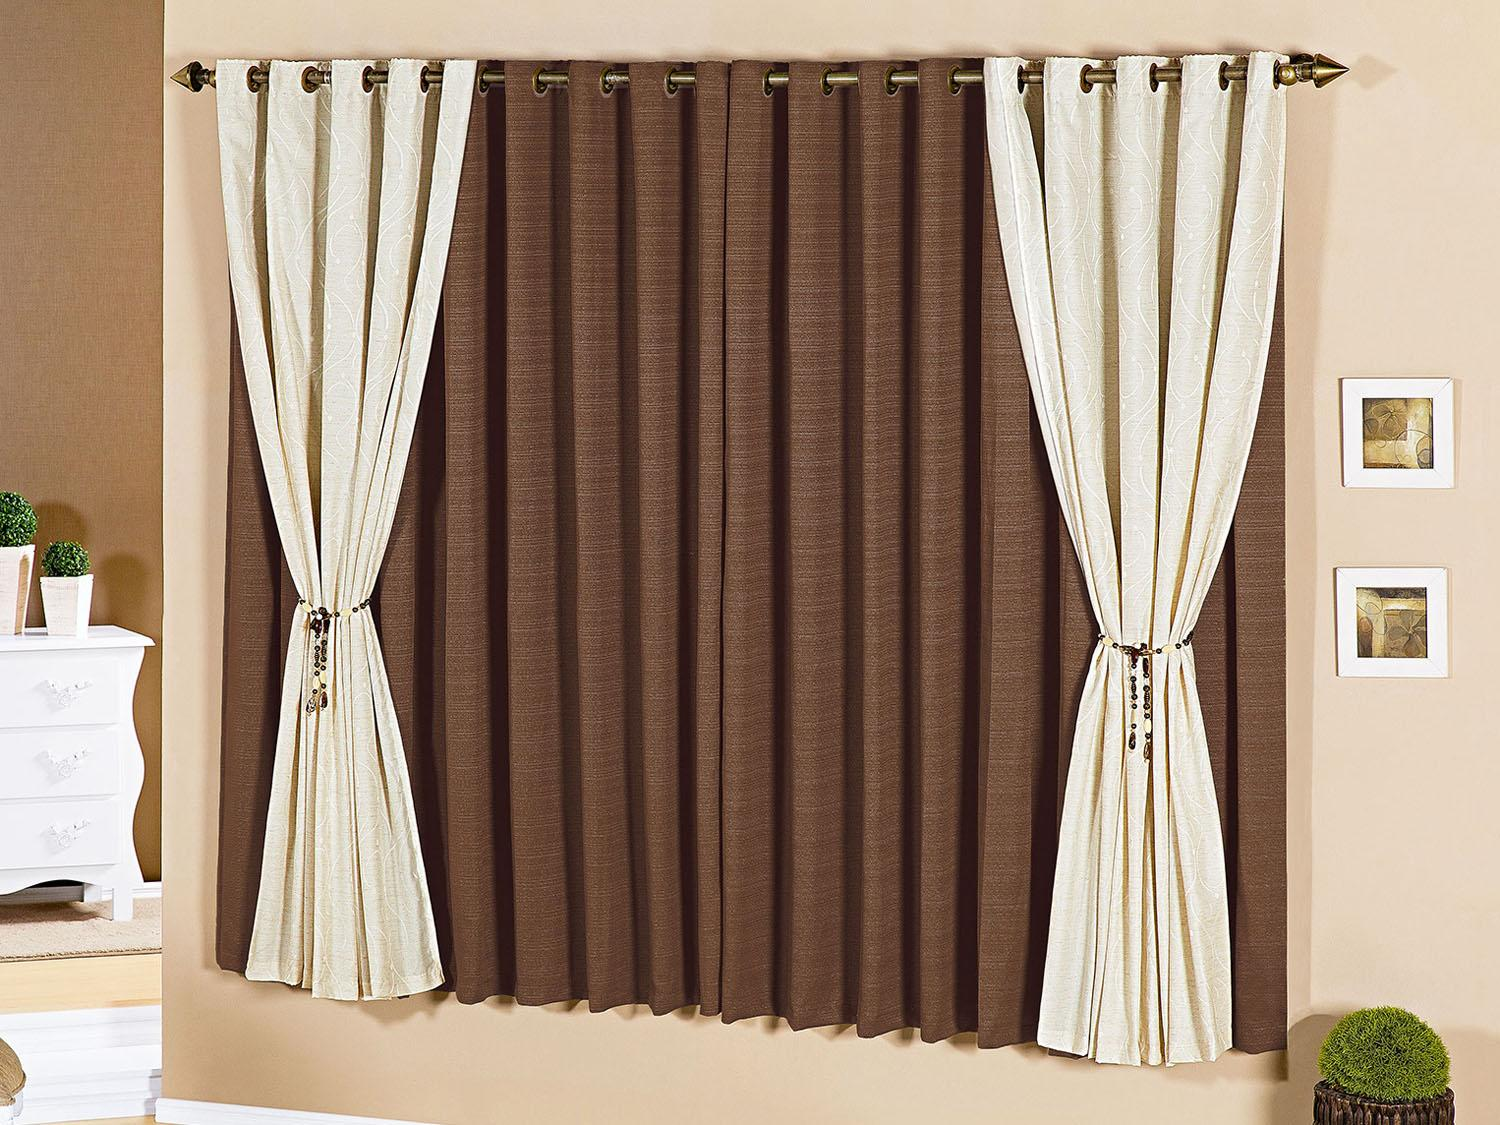 Ganchos Para Cortinas De Madera Of Cortinas Koloratex